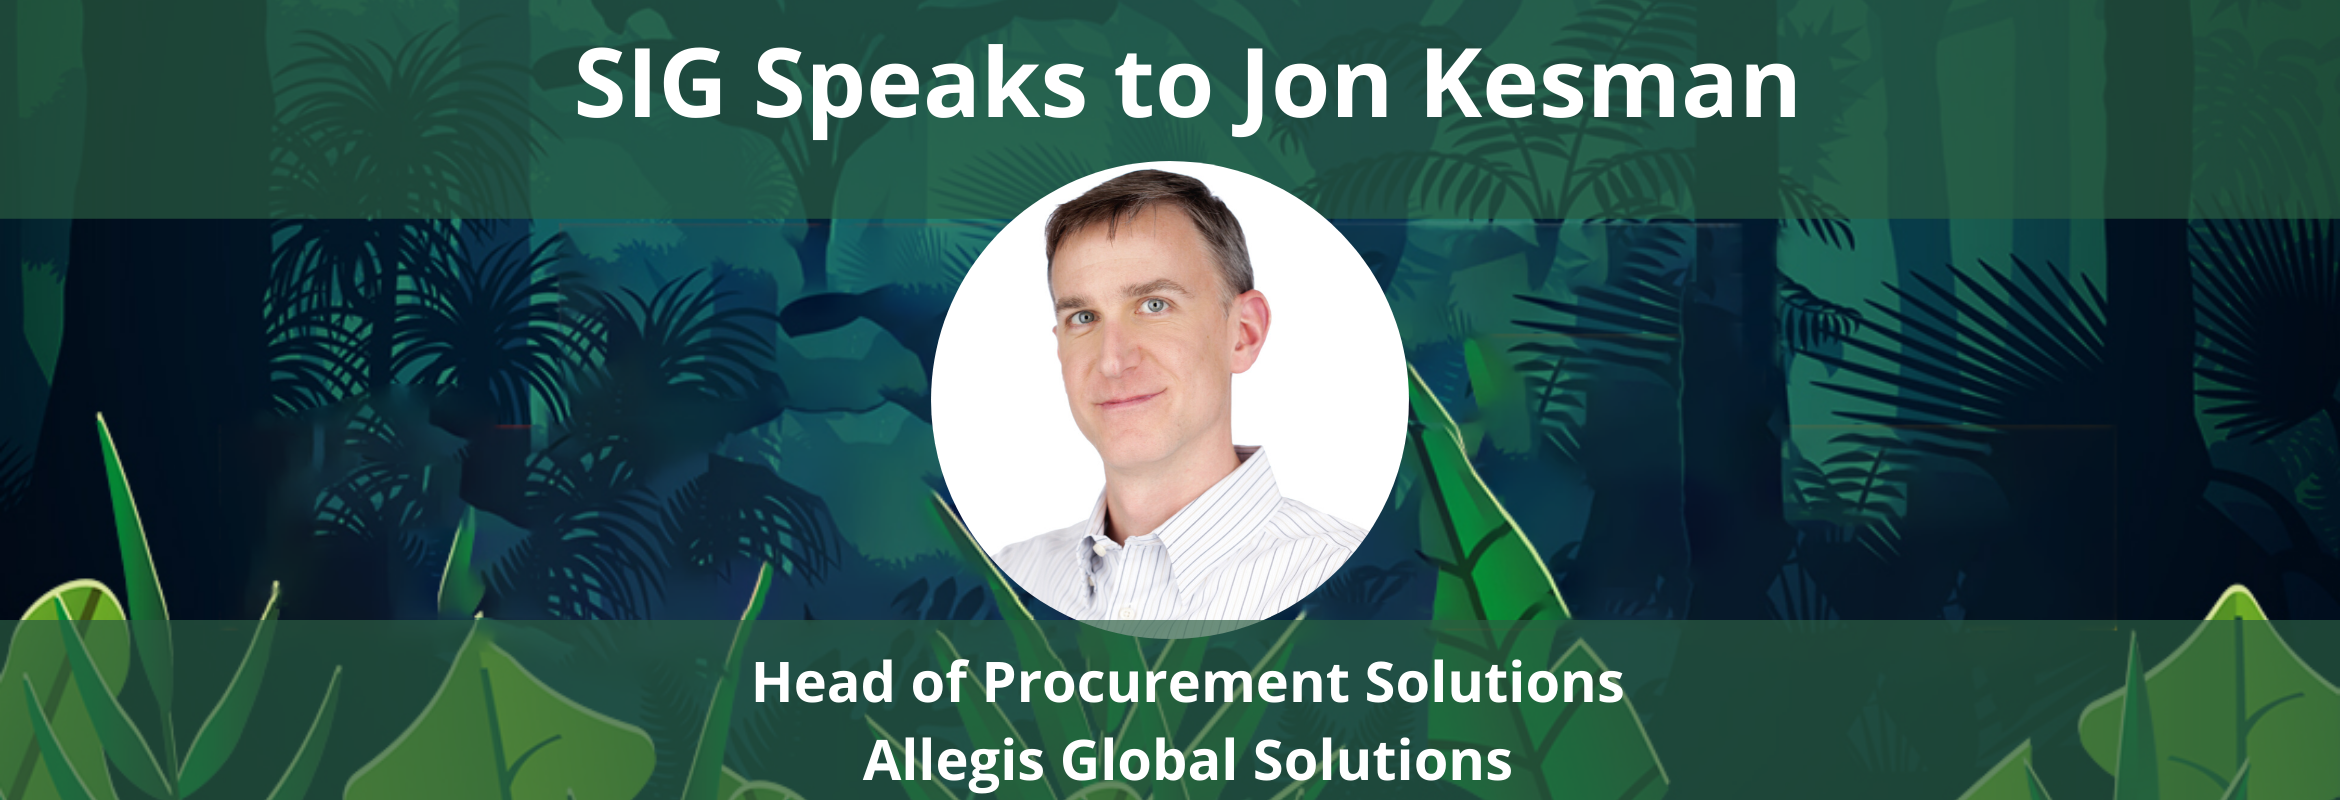 Jon Kesman presents at the SIG Procurement Technology Summit